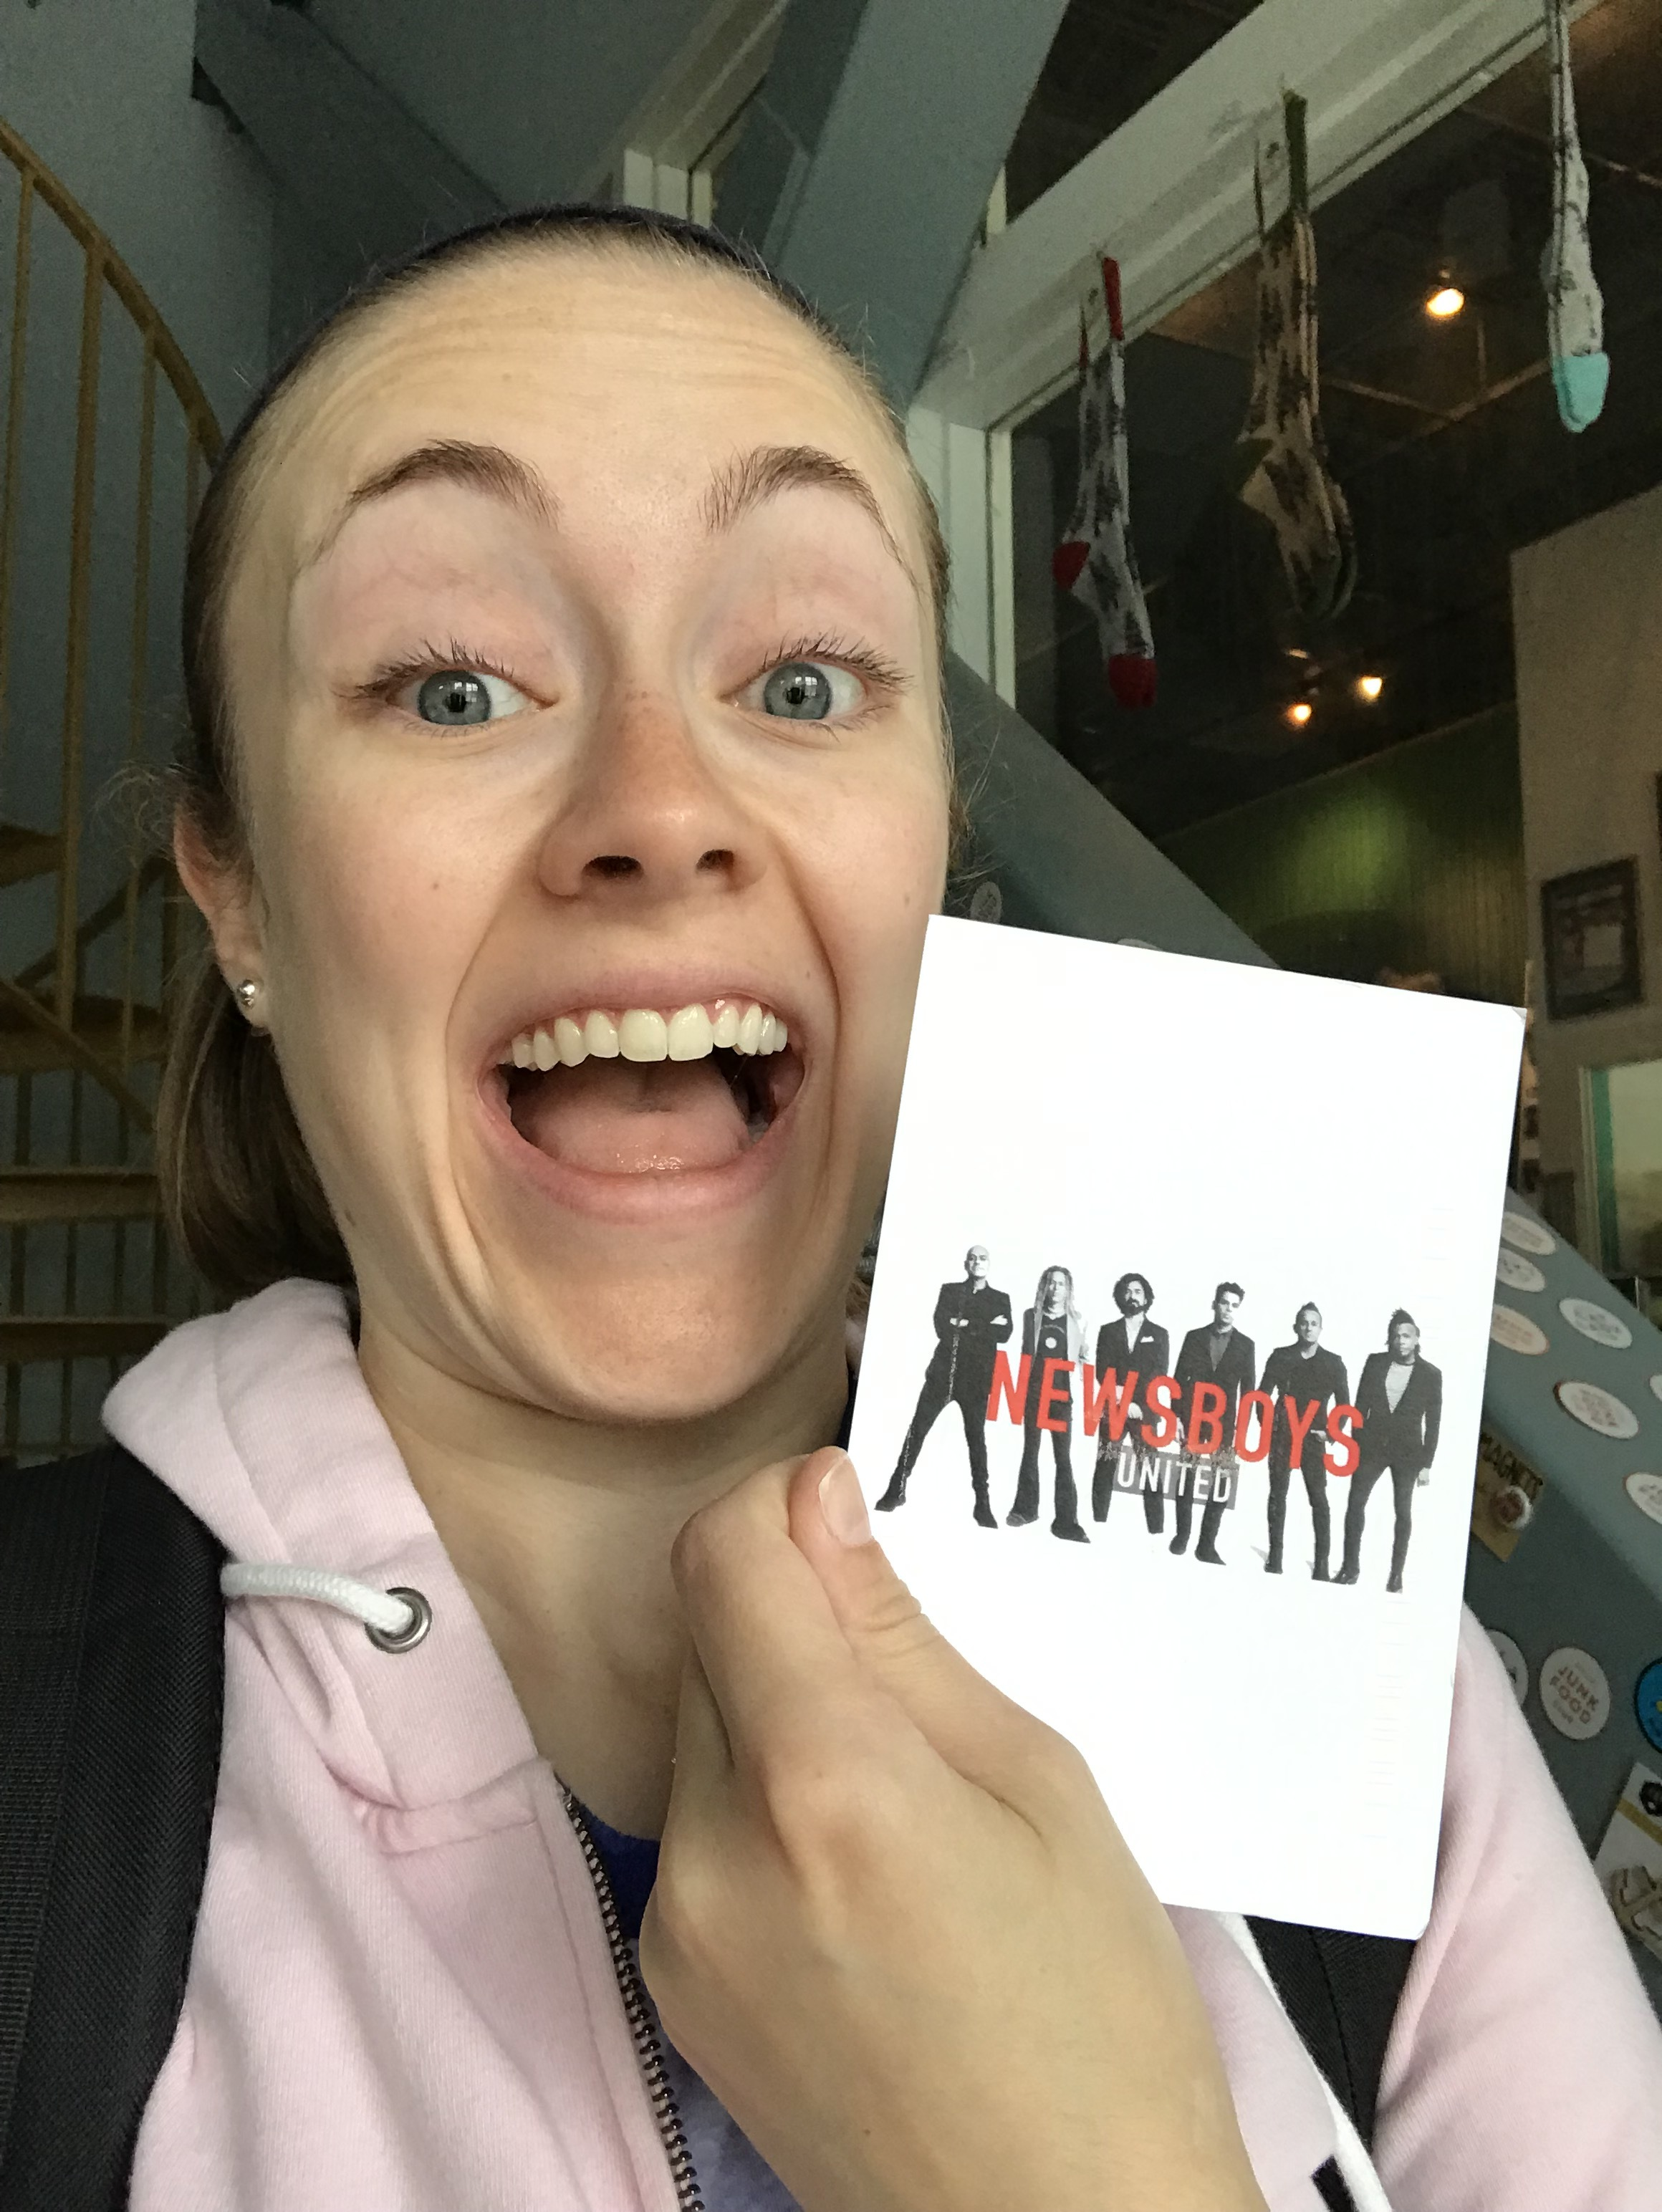 Making friends through snail mail and music! Yes, I was stoked. Yes I have amazing friends through working at C&Co. Community comes easy here.